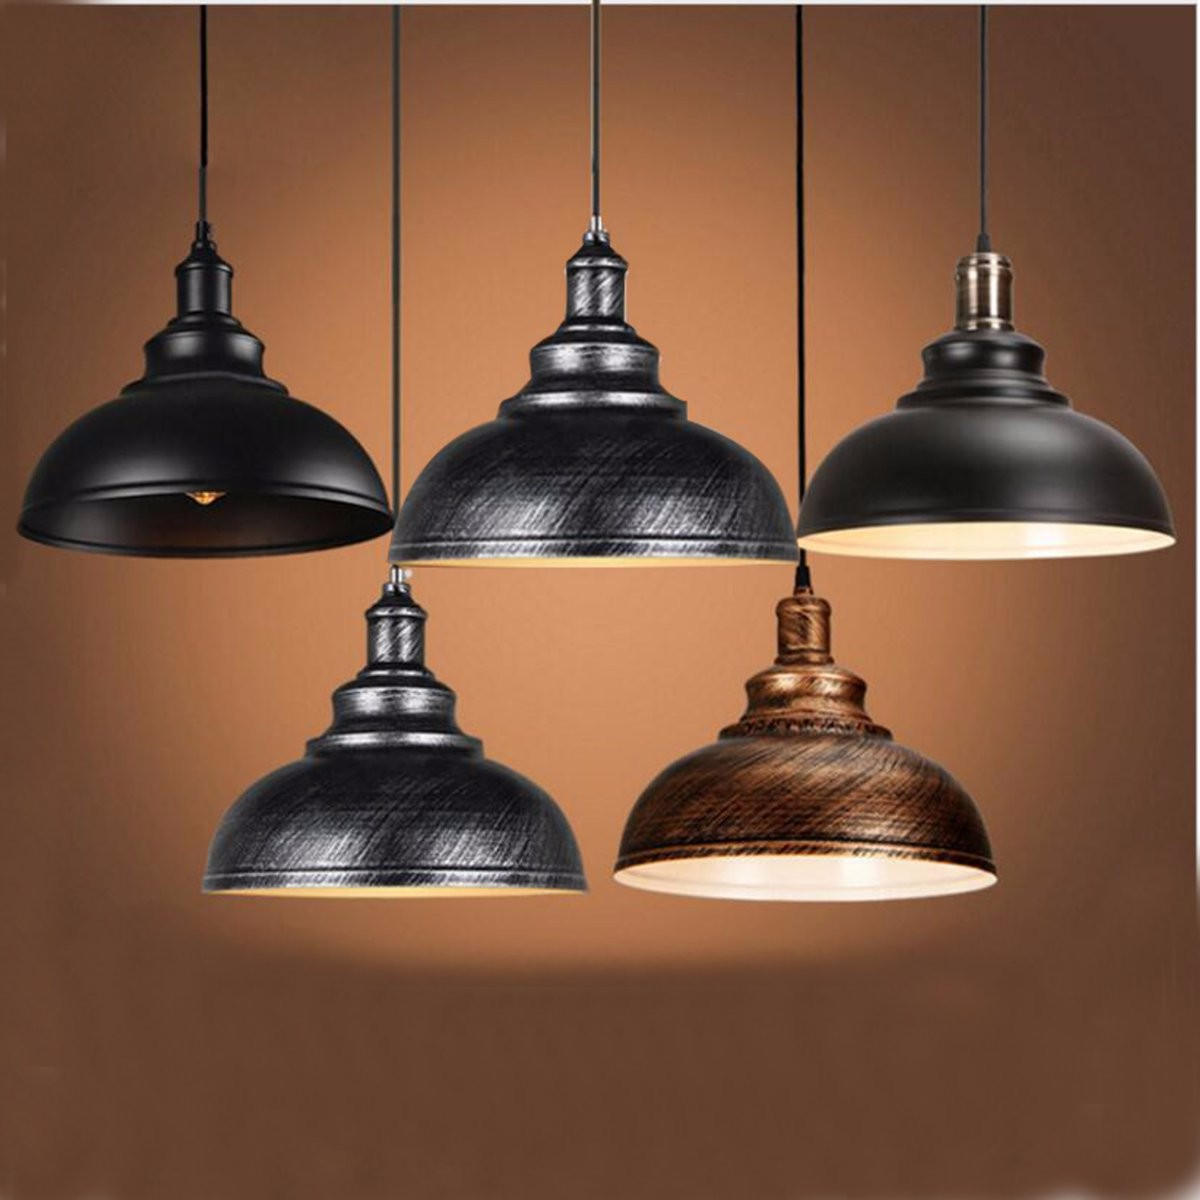 Hanging Lamp Vintage Retro Ceiling Light Chandelier Pendant Hanging Lamp Lampshade Home Fixture Lamp For Kitchen Bedroom Living Room Restaurant Corridor Coffee